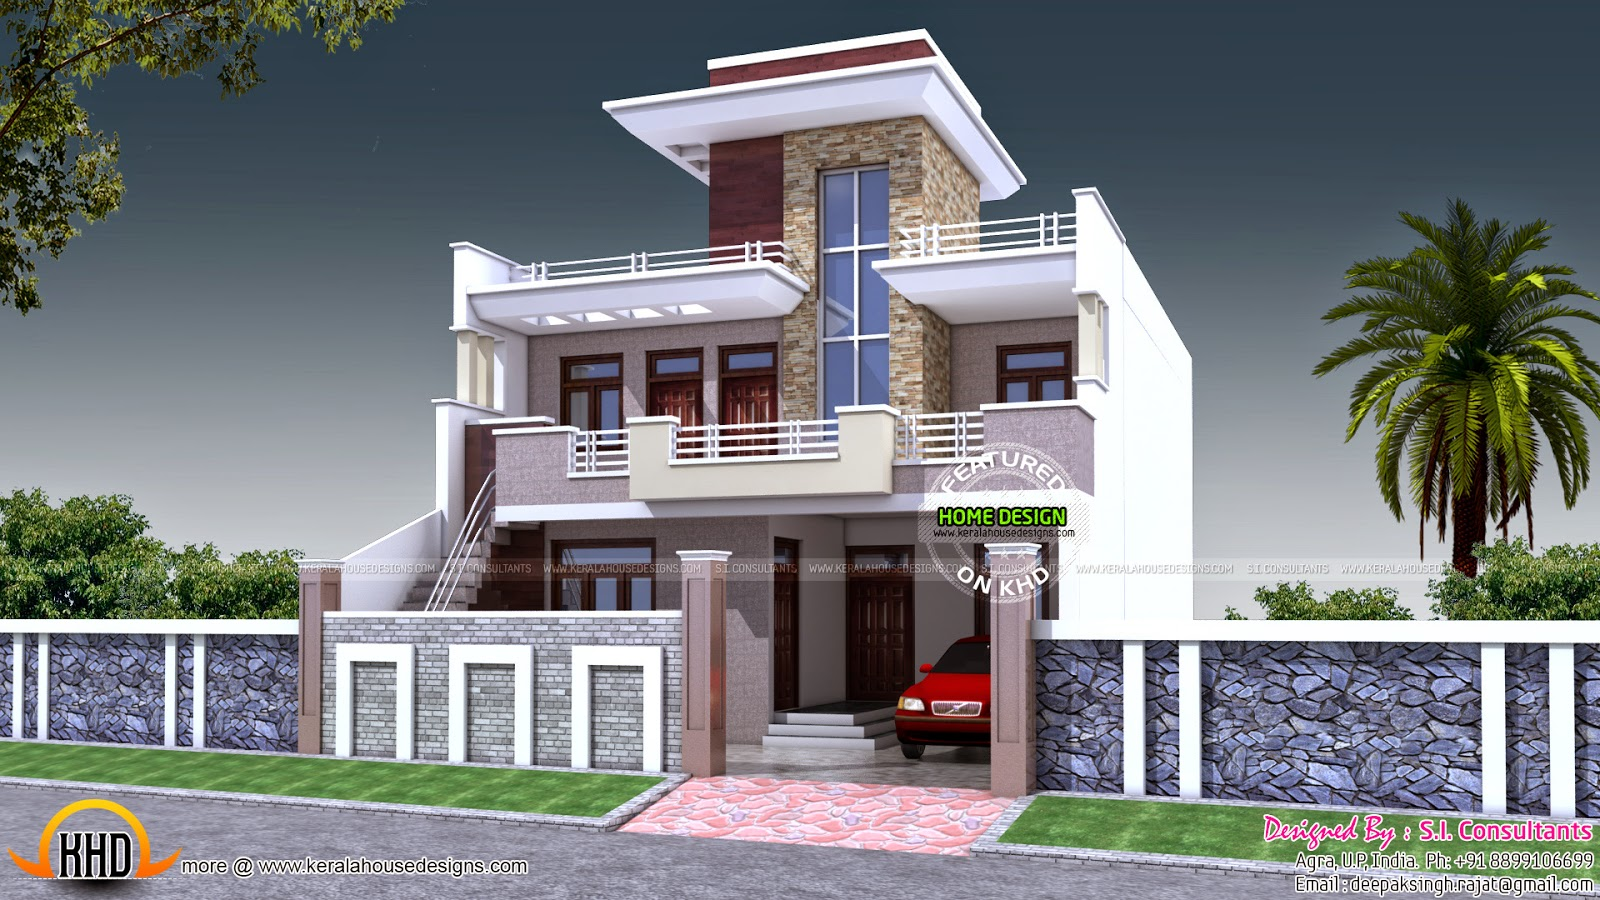 2 house plans with shops on ground floor keralahousedesigns 30 by 30 house plans